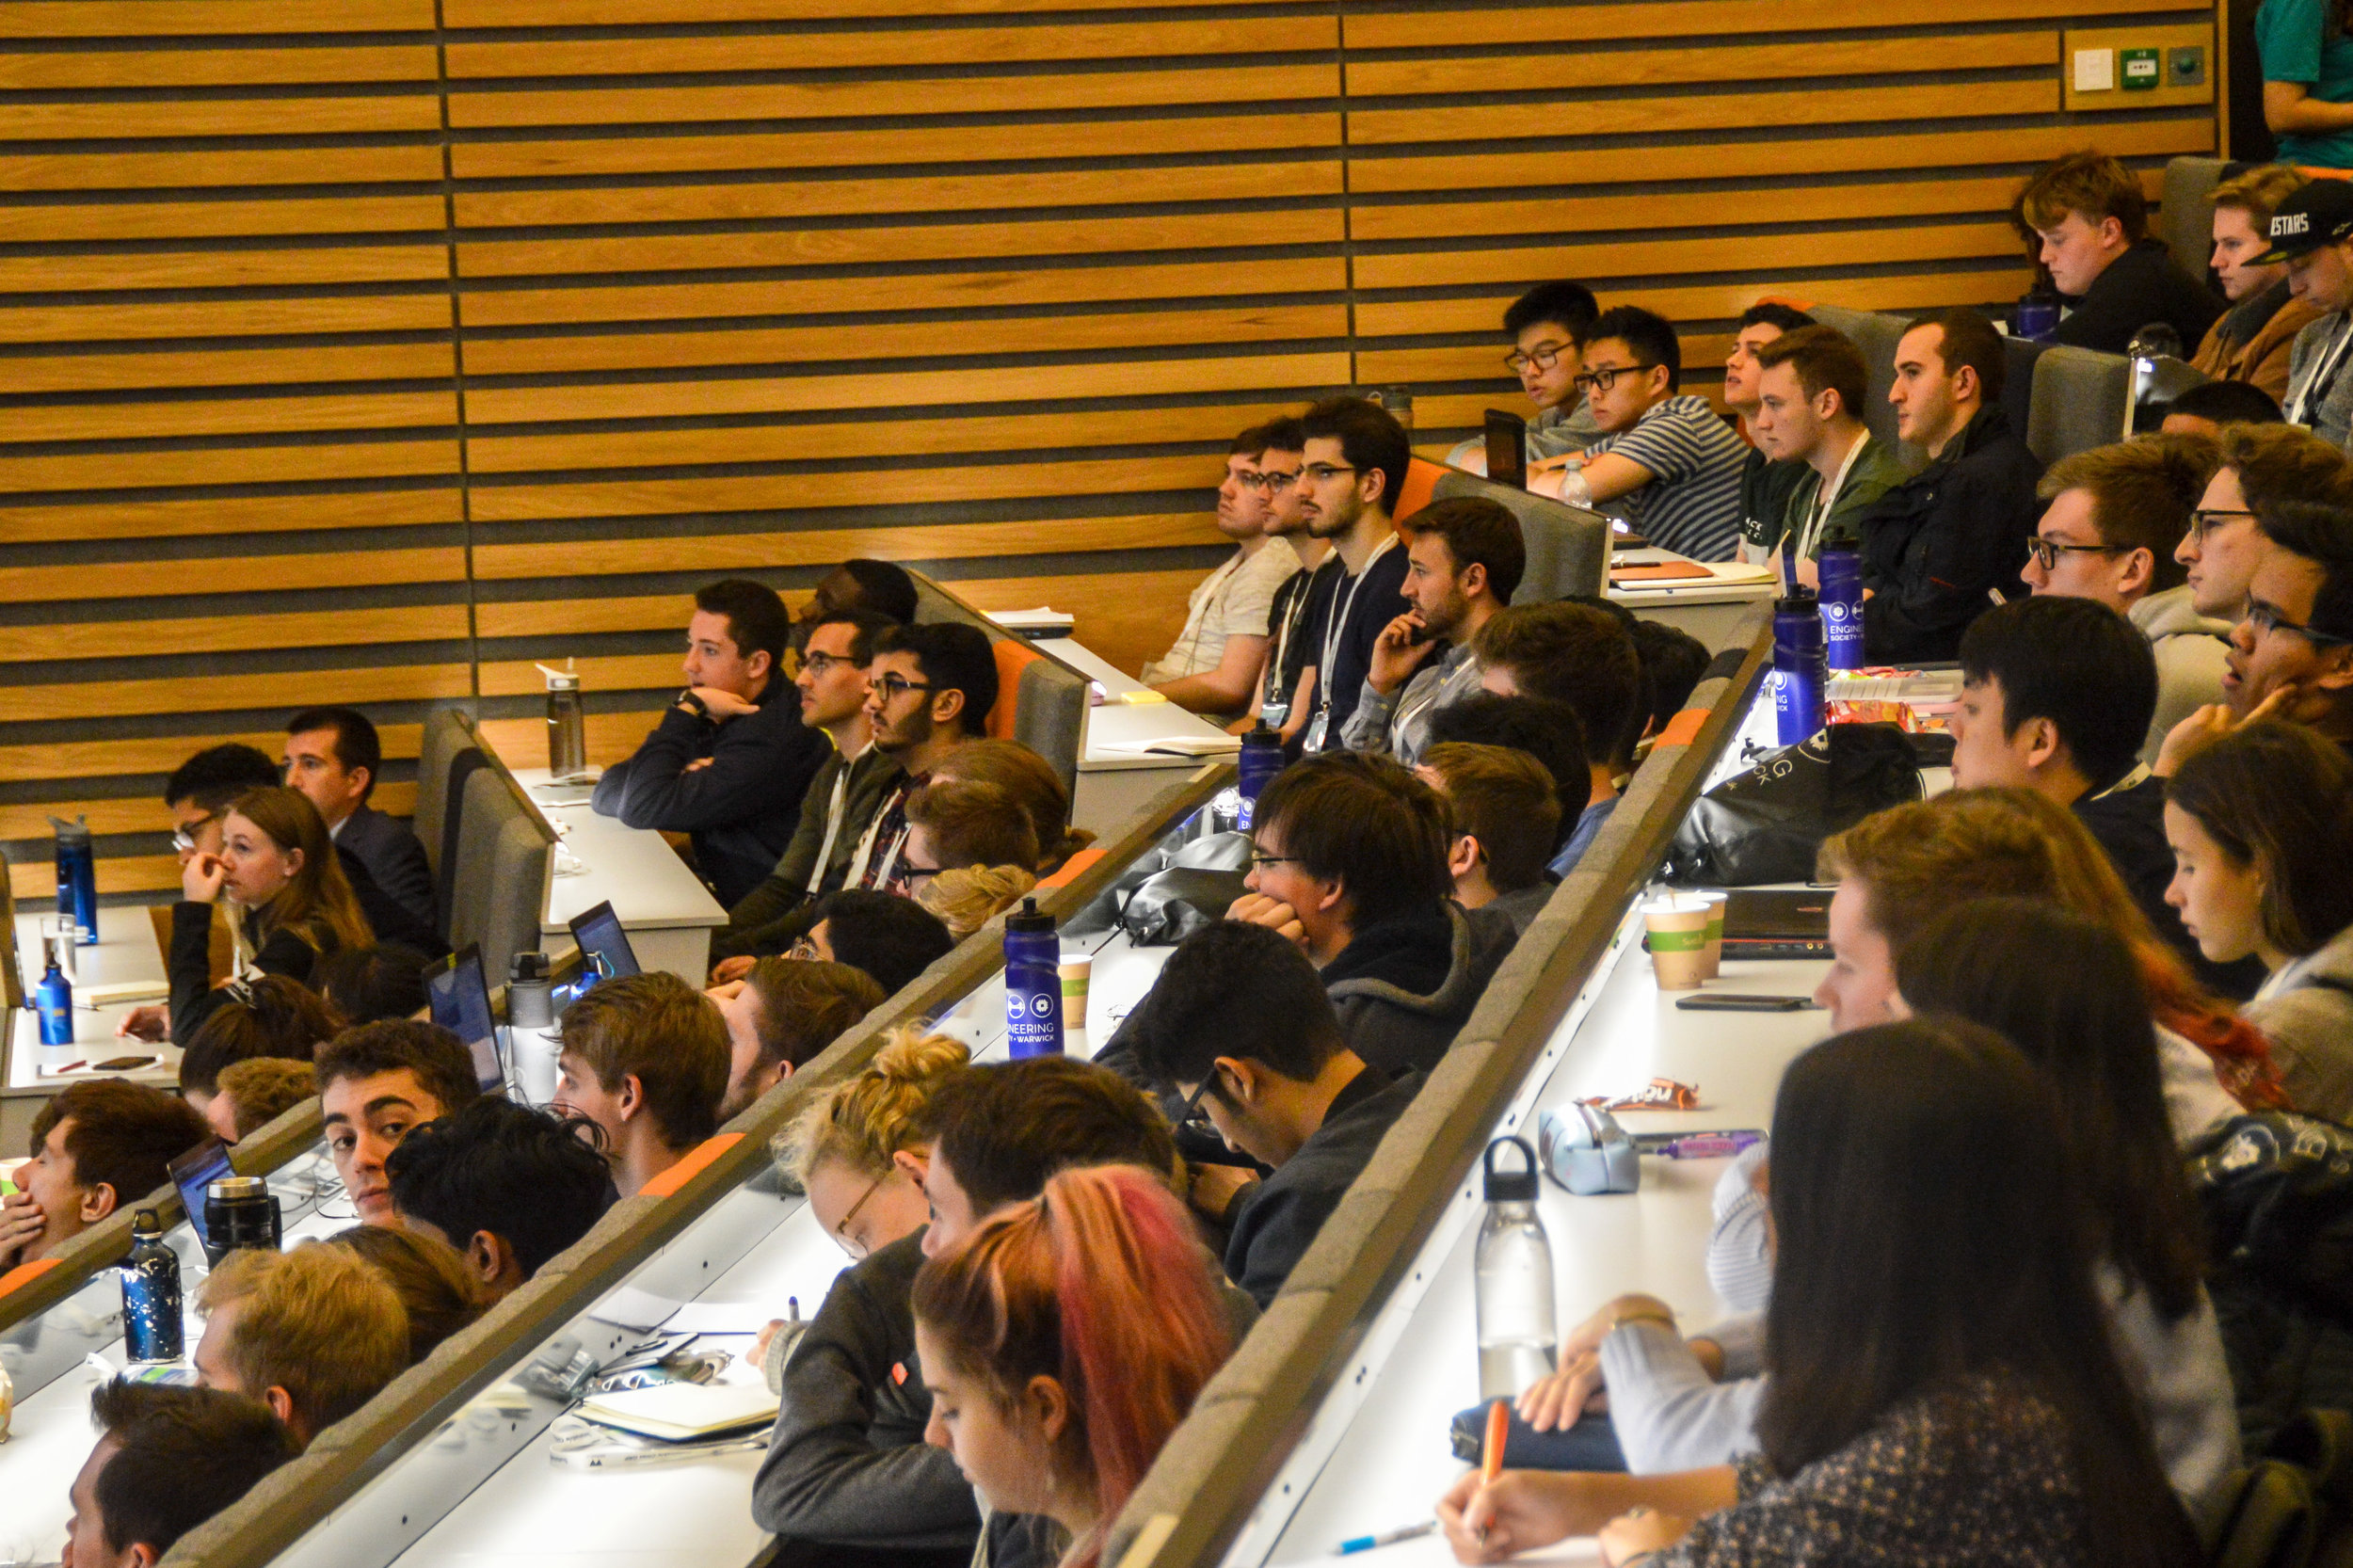 Delegates watch the panel session